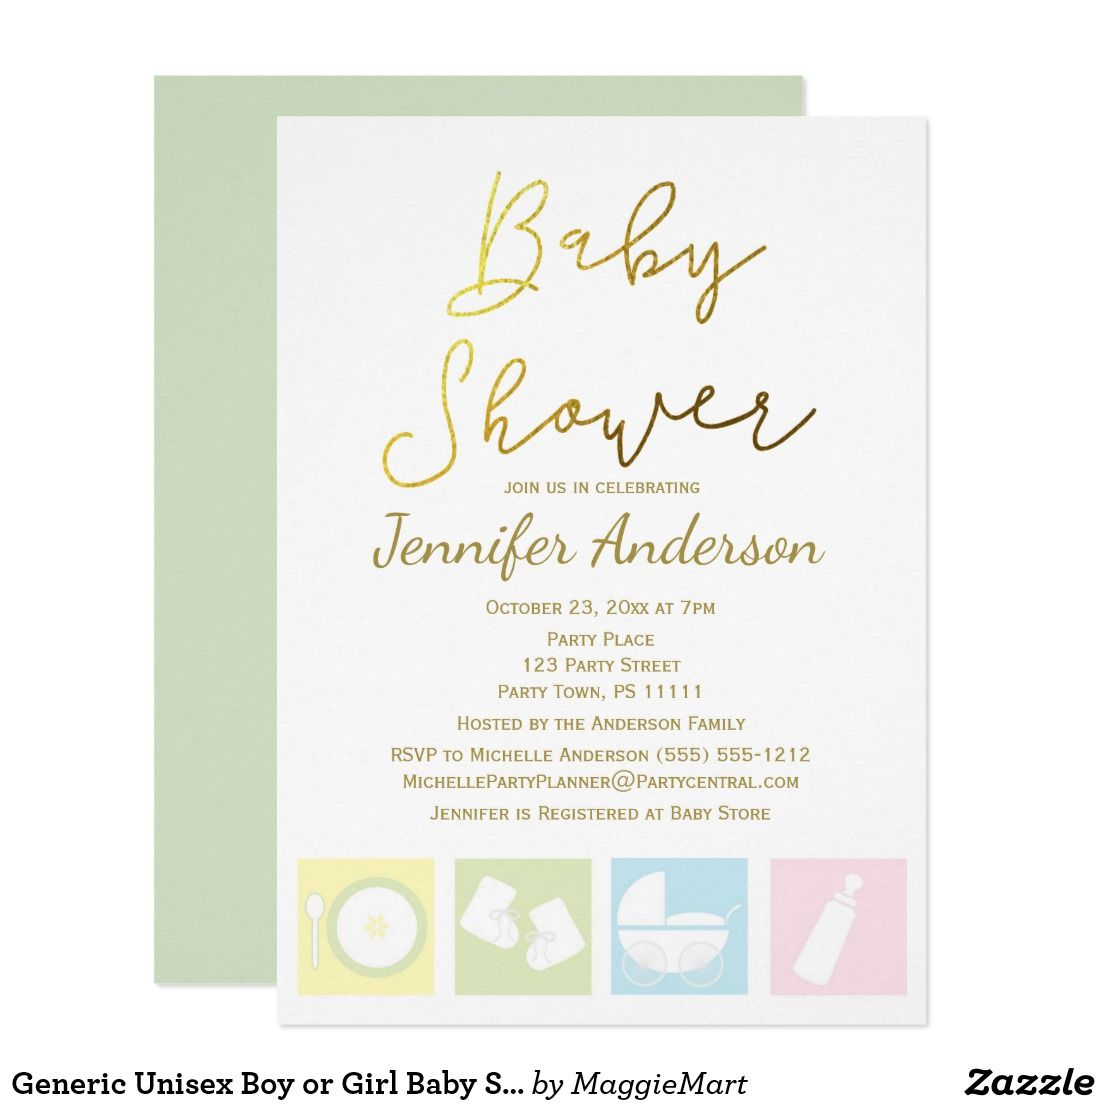 generic unisex boy or girl baby shower invitation in 2018 oh